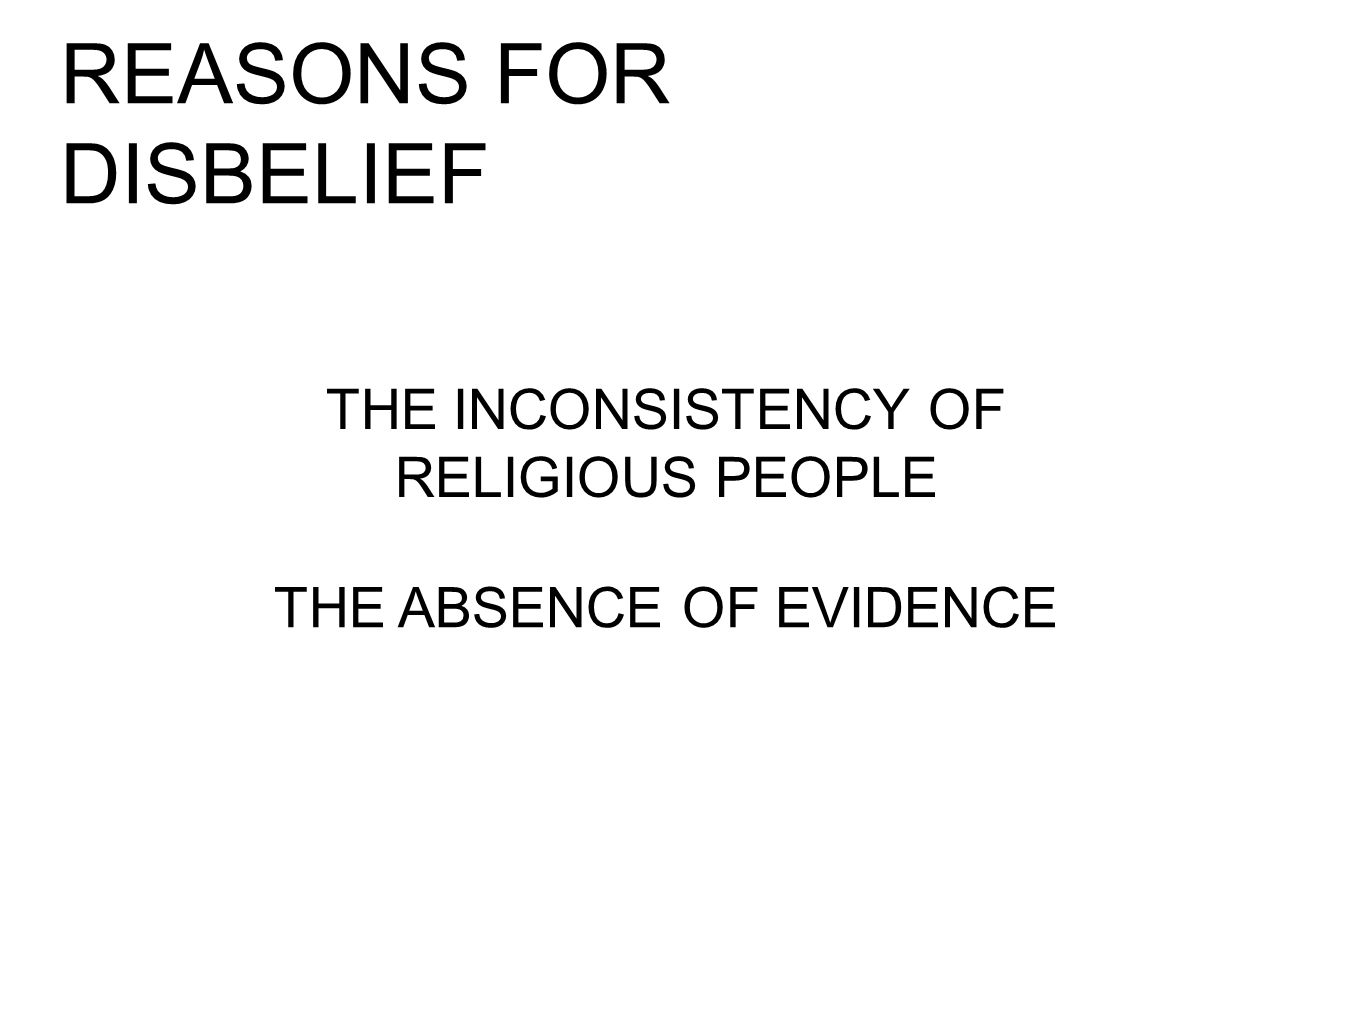 REASONS FOR DISBELIEF THE INCONSISTENCY OF RELIGIOUS PEOPLE THE ABSENCE OF EVIDENCE